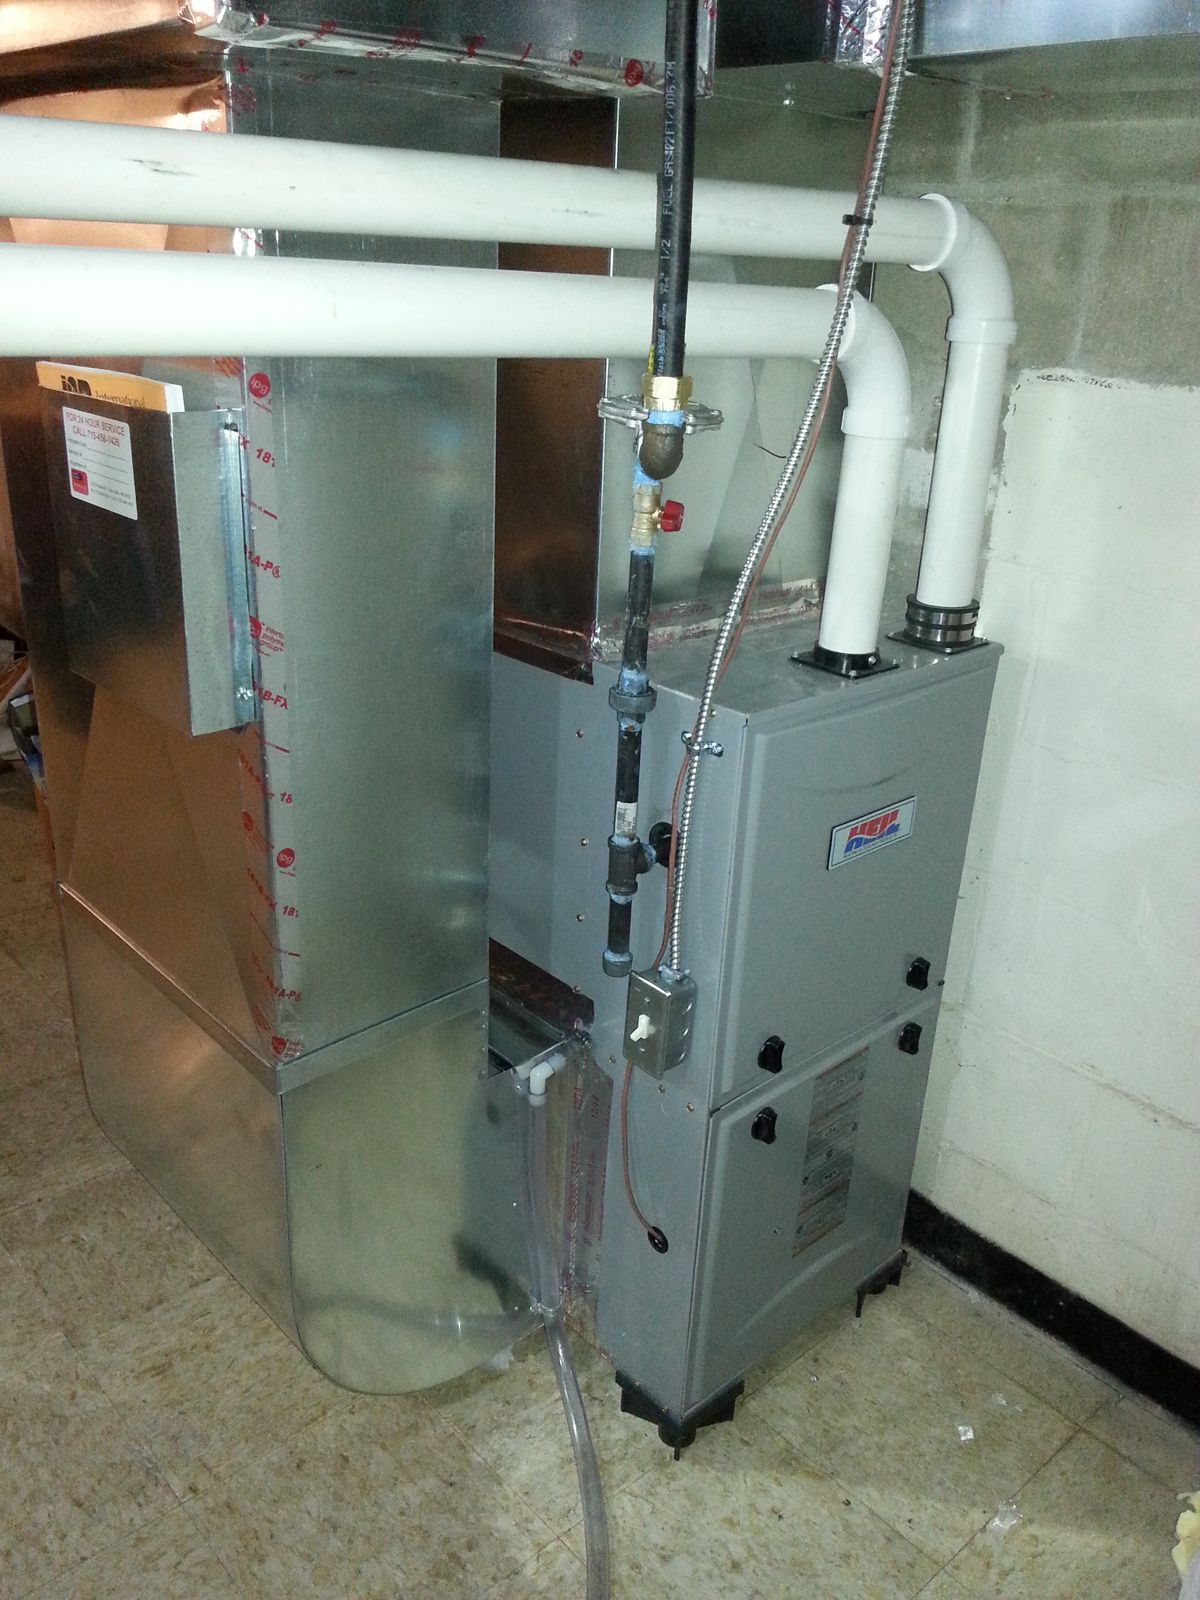 Furnace Installation Services Available in Kansas City and